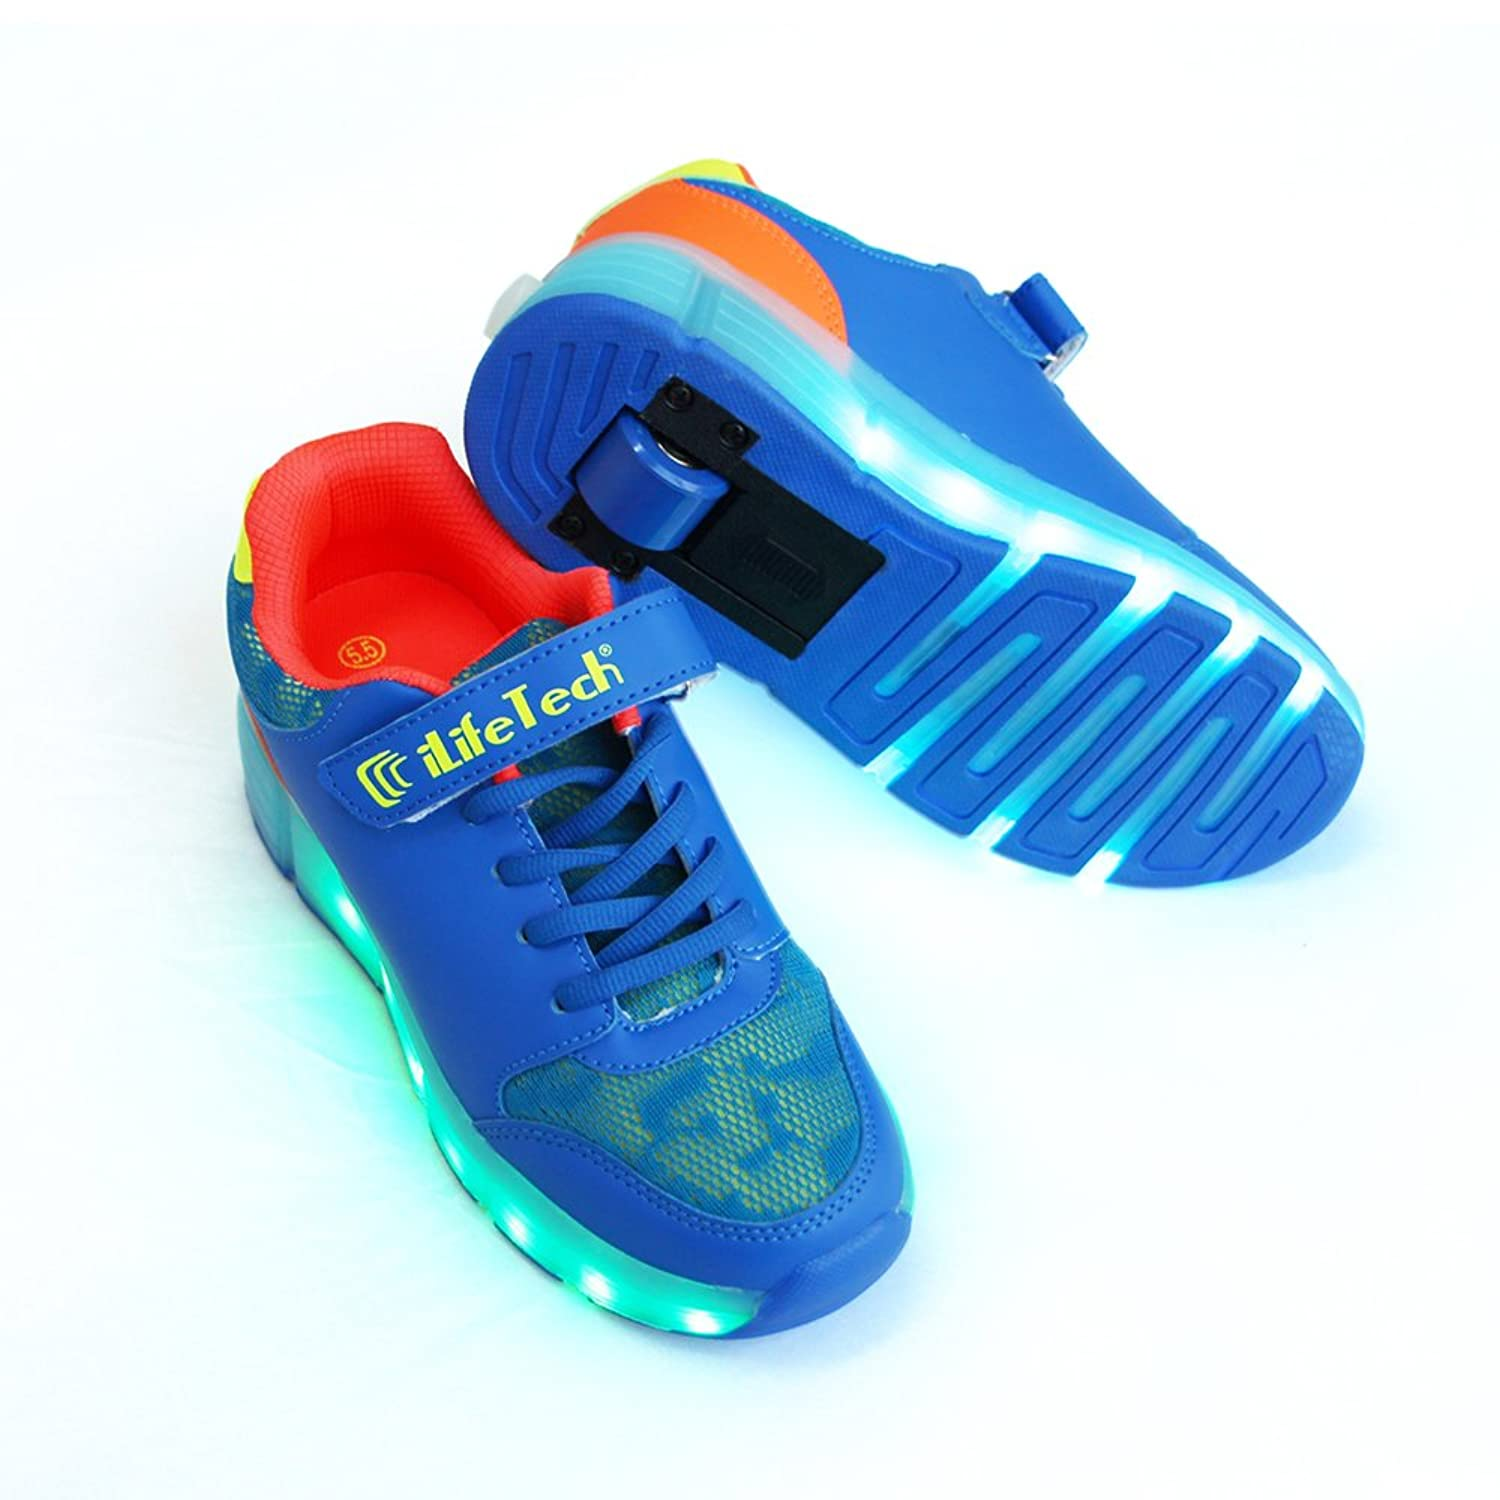 Roller tennis shoes - Amazon Com Ilifetech Rechargeable Led Skate Shoes For Boys Rechargeable Light Up Roller Skate Shoes With Wheels Flashing Sneakers Sneakers